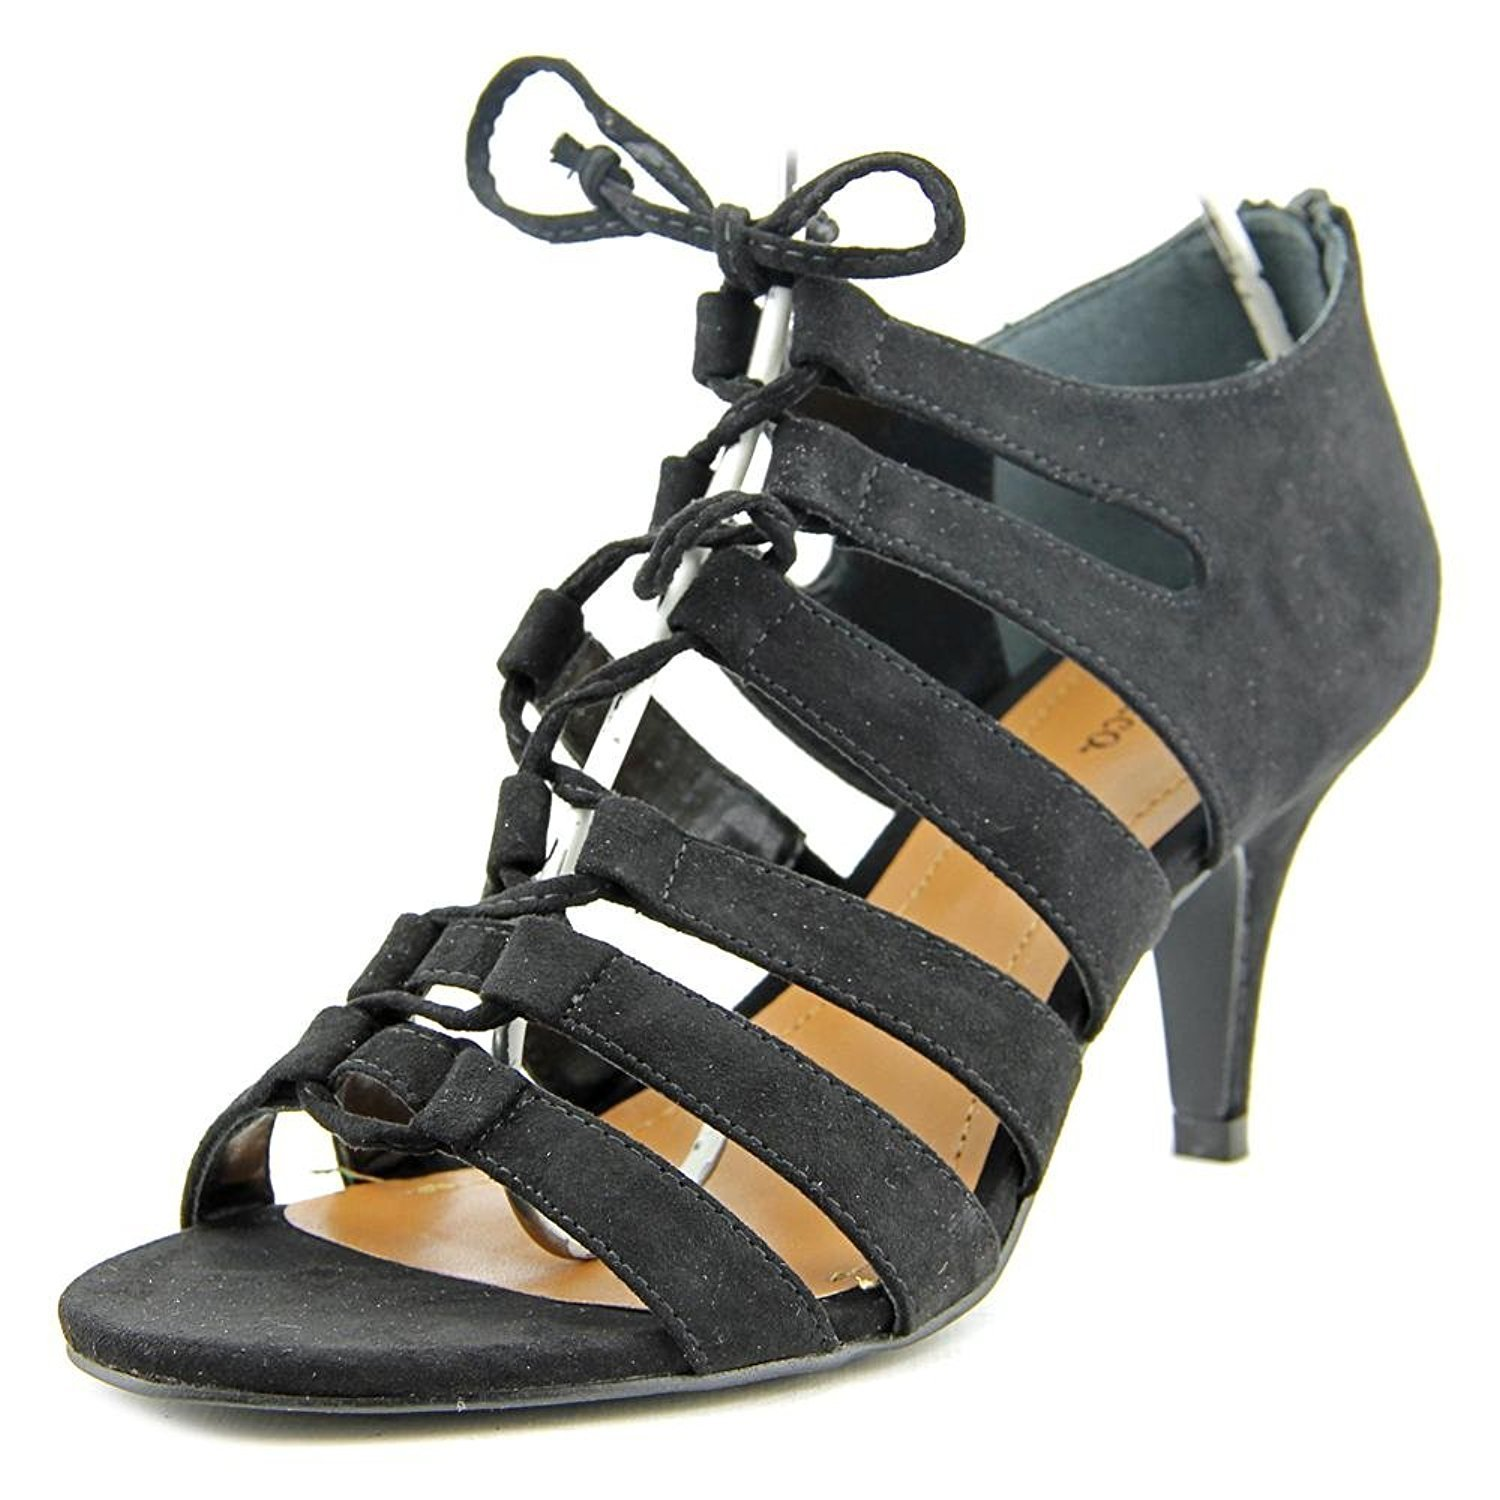 Style & Co. Womens Hannde Open Toe Casual Strappy Sandals, Black, Size 7.5 by Style & Co.